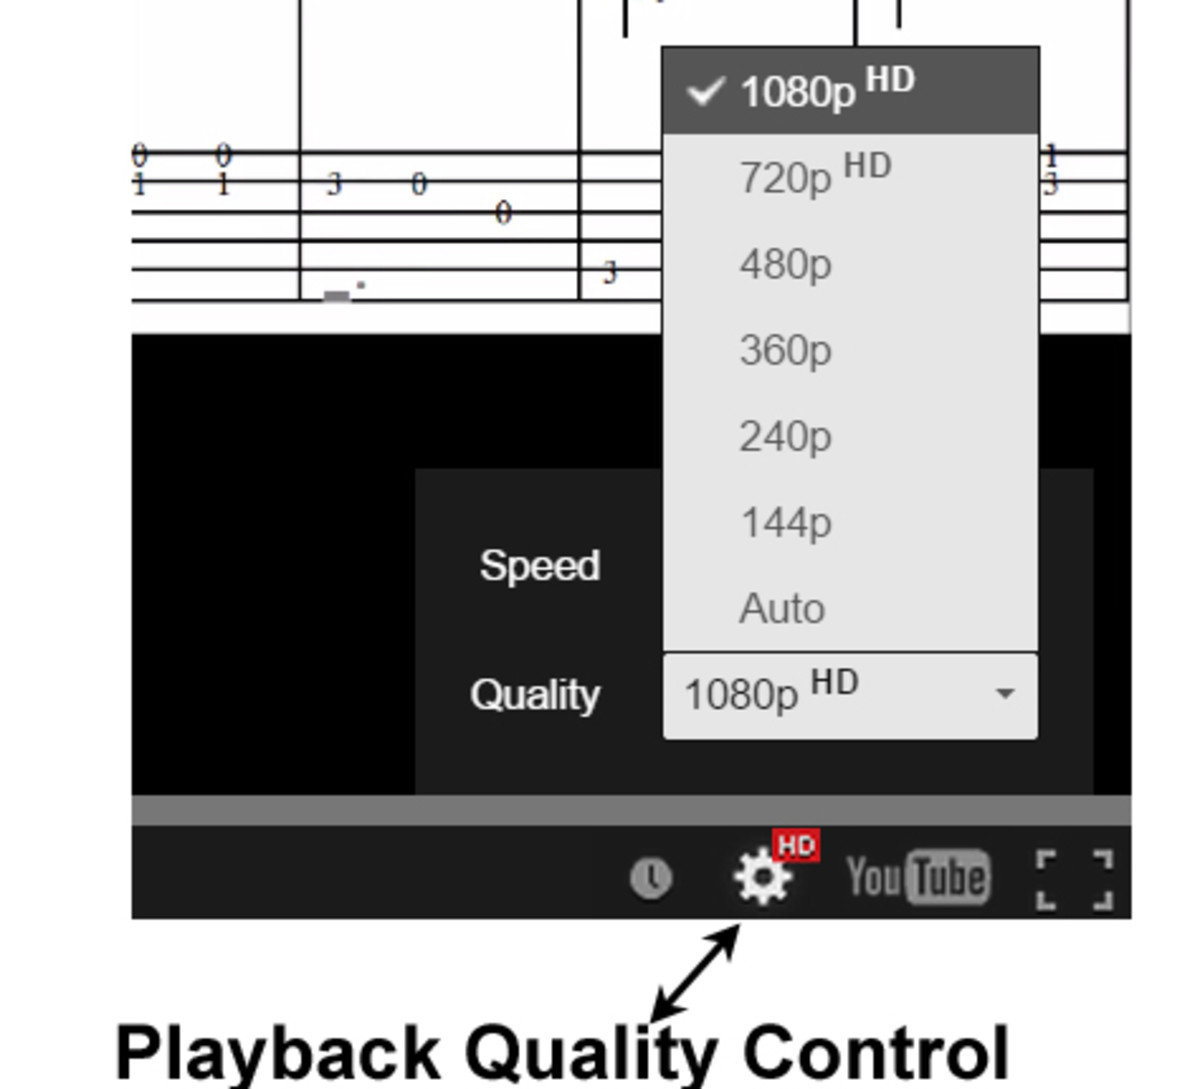 Playback quality control icon appears after you click play.